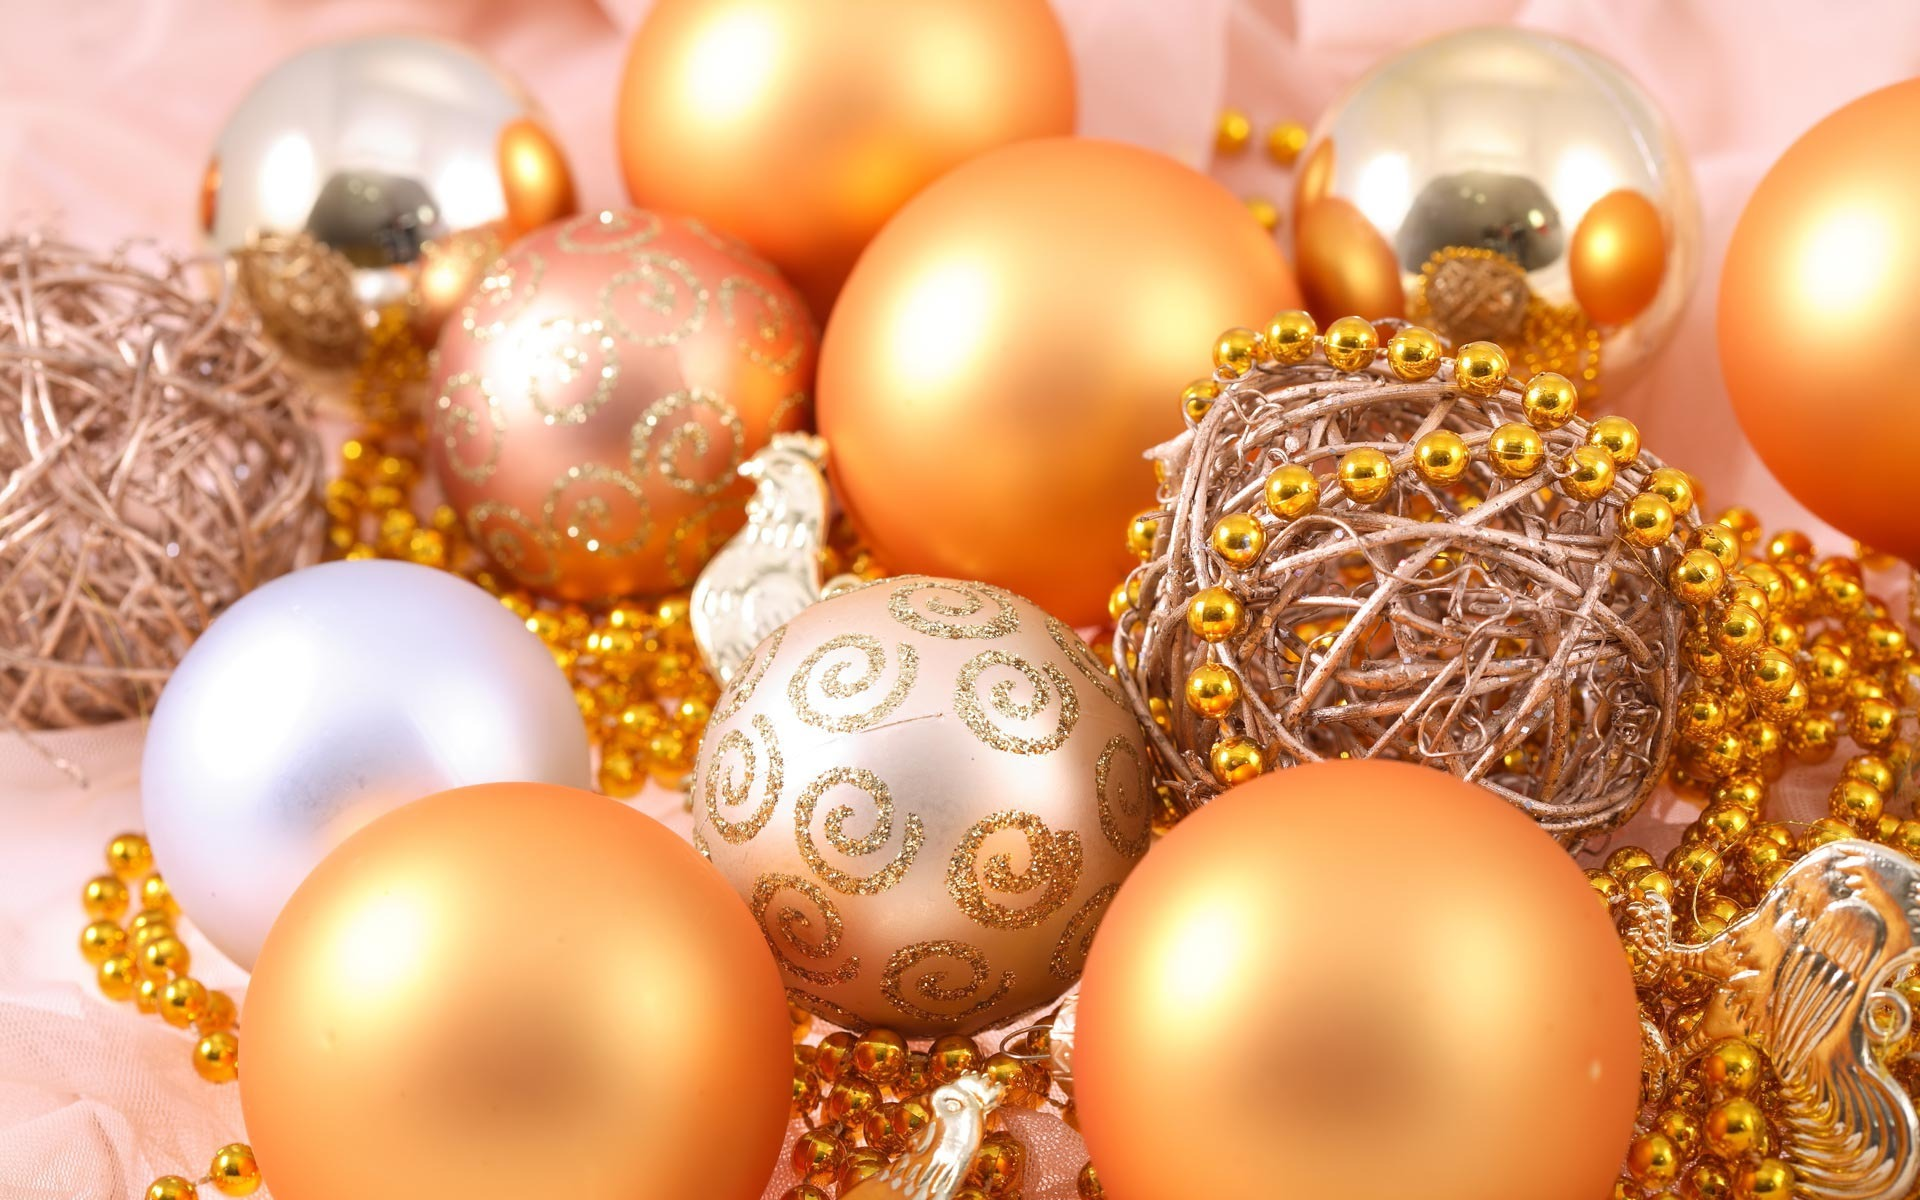 Fantastic Christmas Ornaments Wallpaper